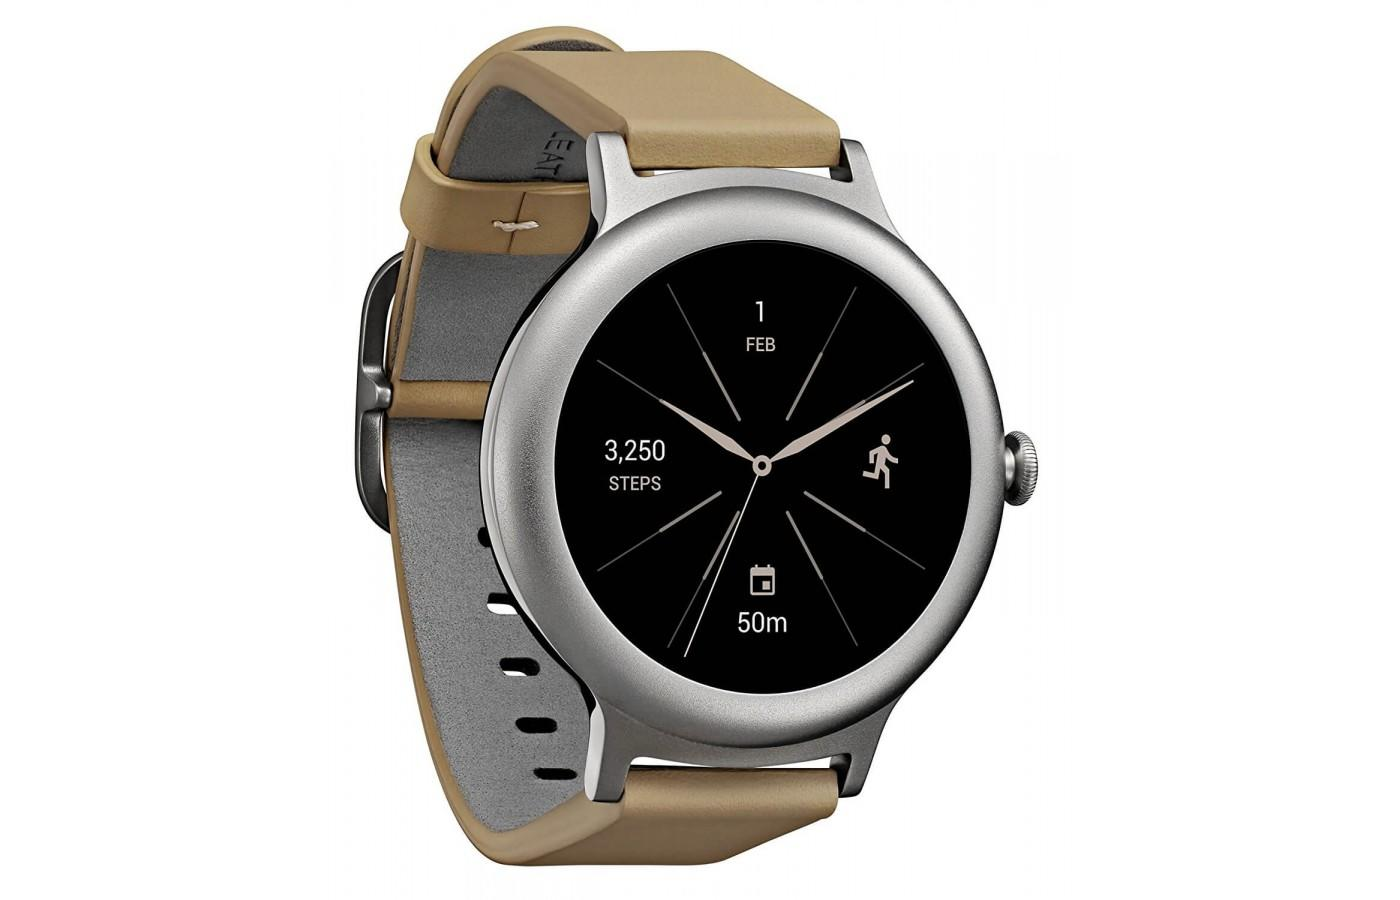 the LG Watch Style is WiFi and Bluetooth enabled